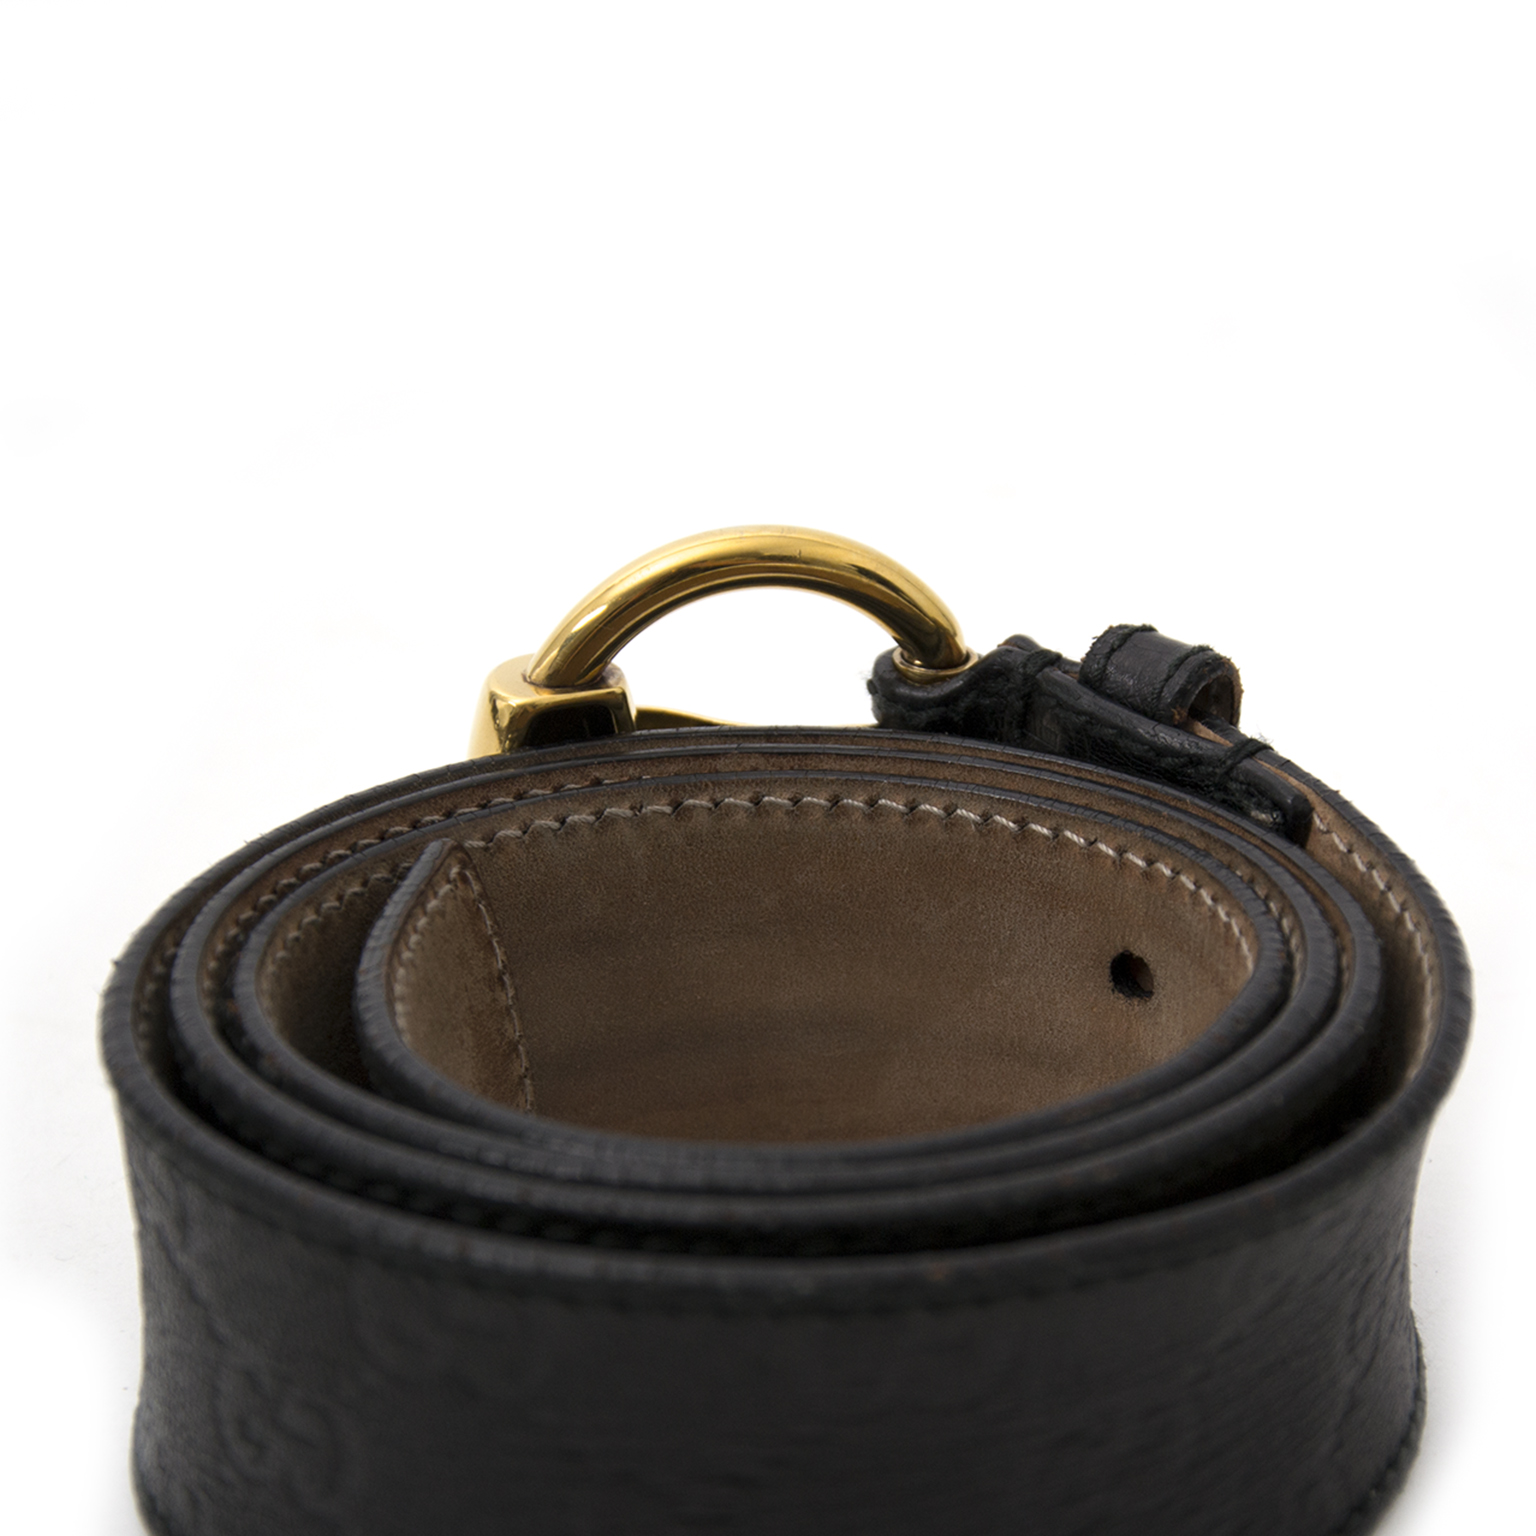 shop safe online Gucci Black Leather Monogram Belt second hand